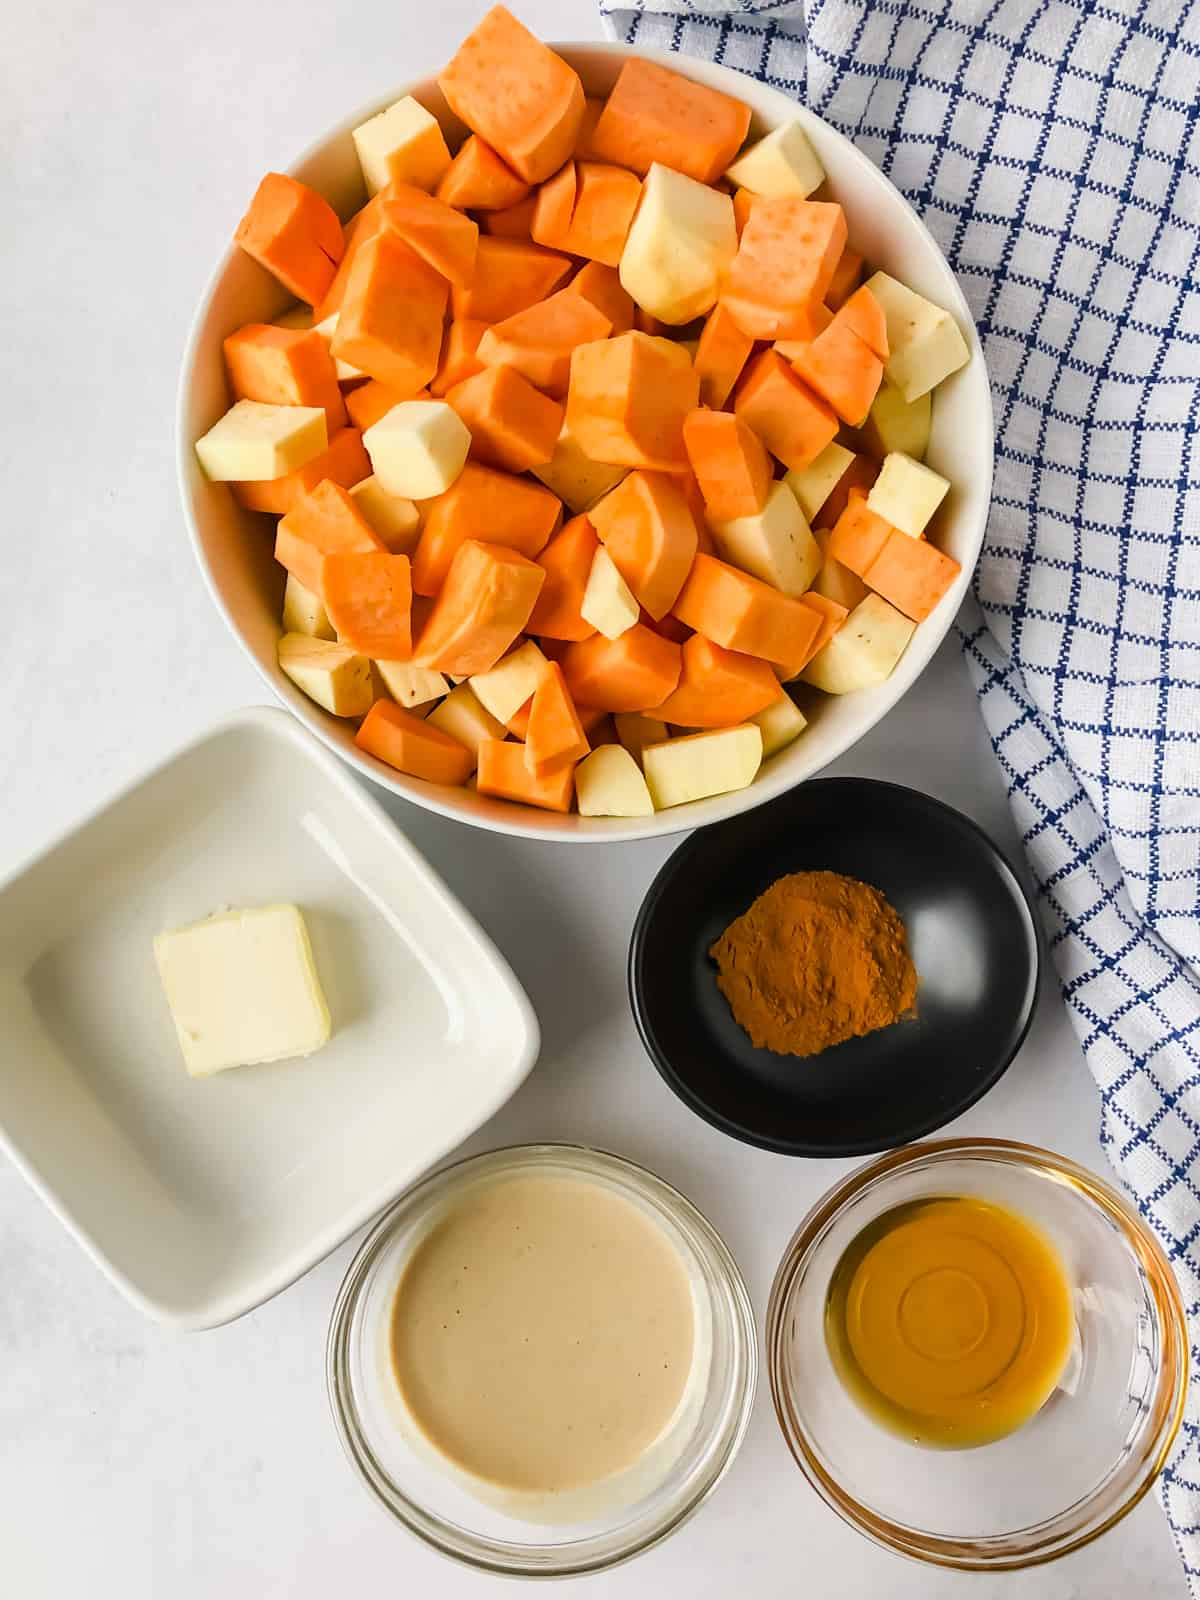 sweet potatoes, butter, cinnamon, tahini, maple syrup in bowls on white surface with blue napkin